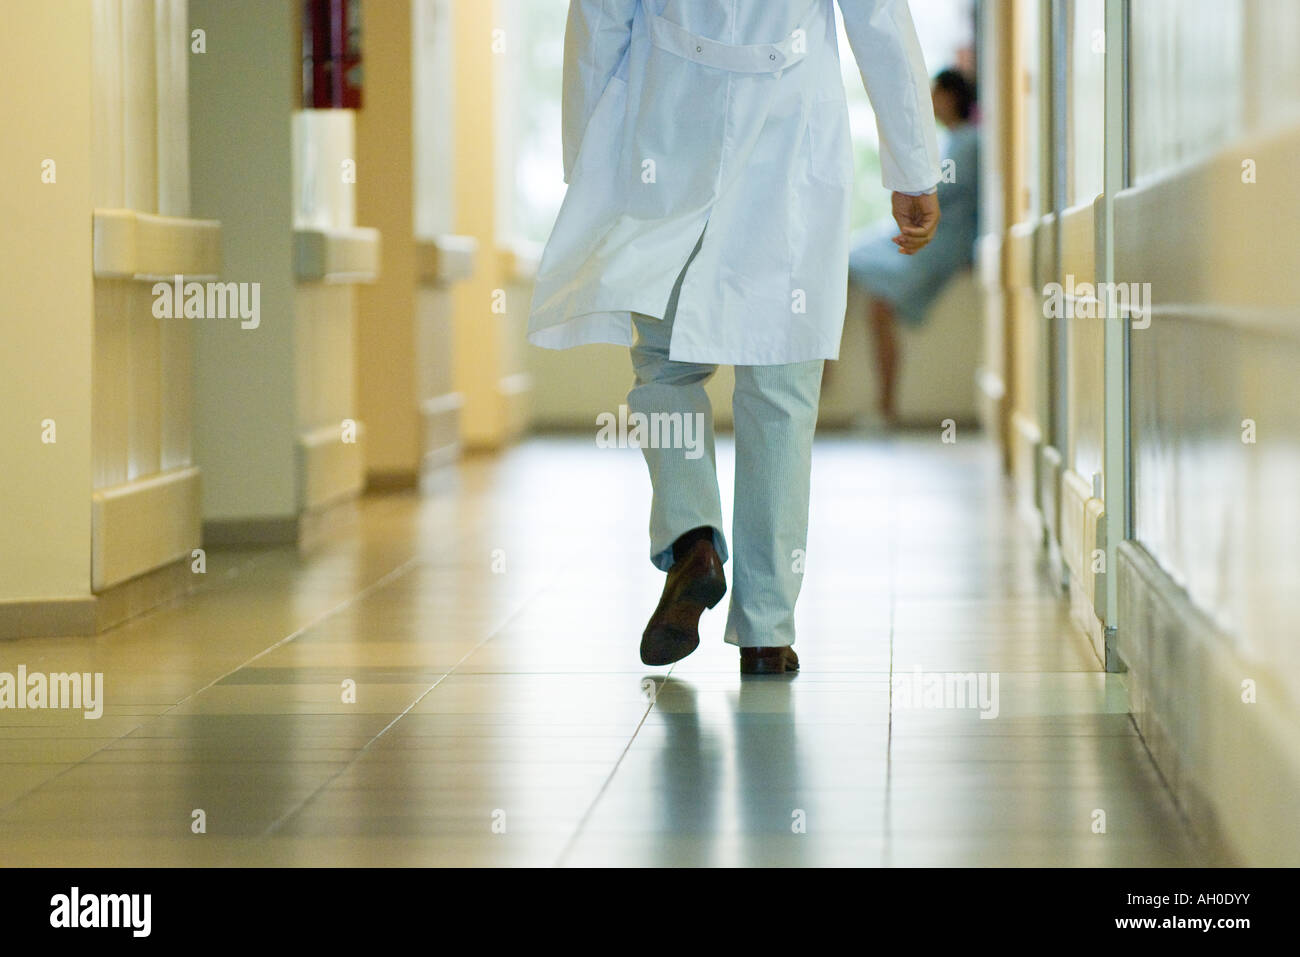 Male doctor walking in hospital corridor, cropped rear view - Stock Image